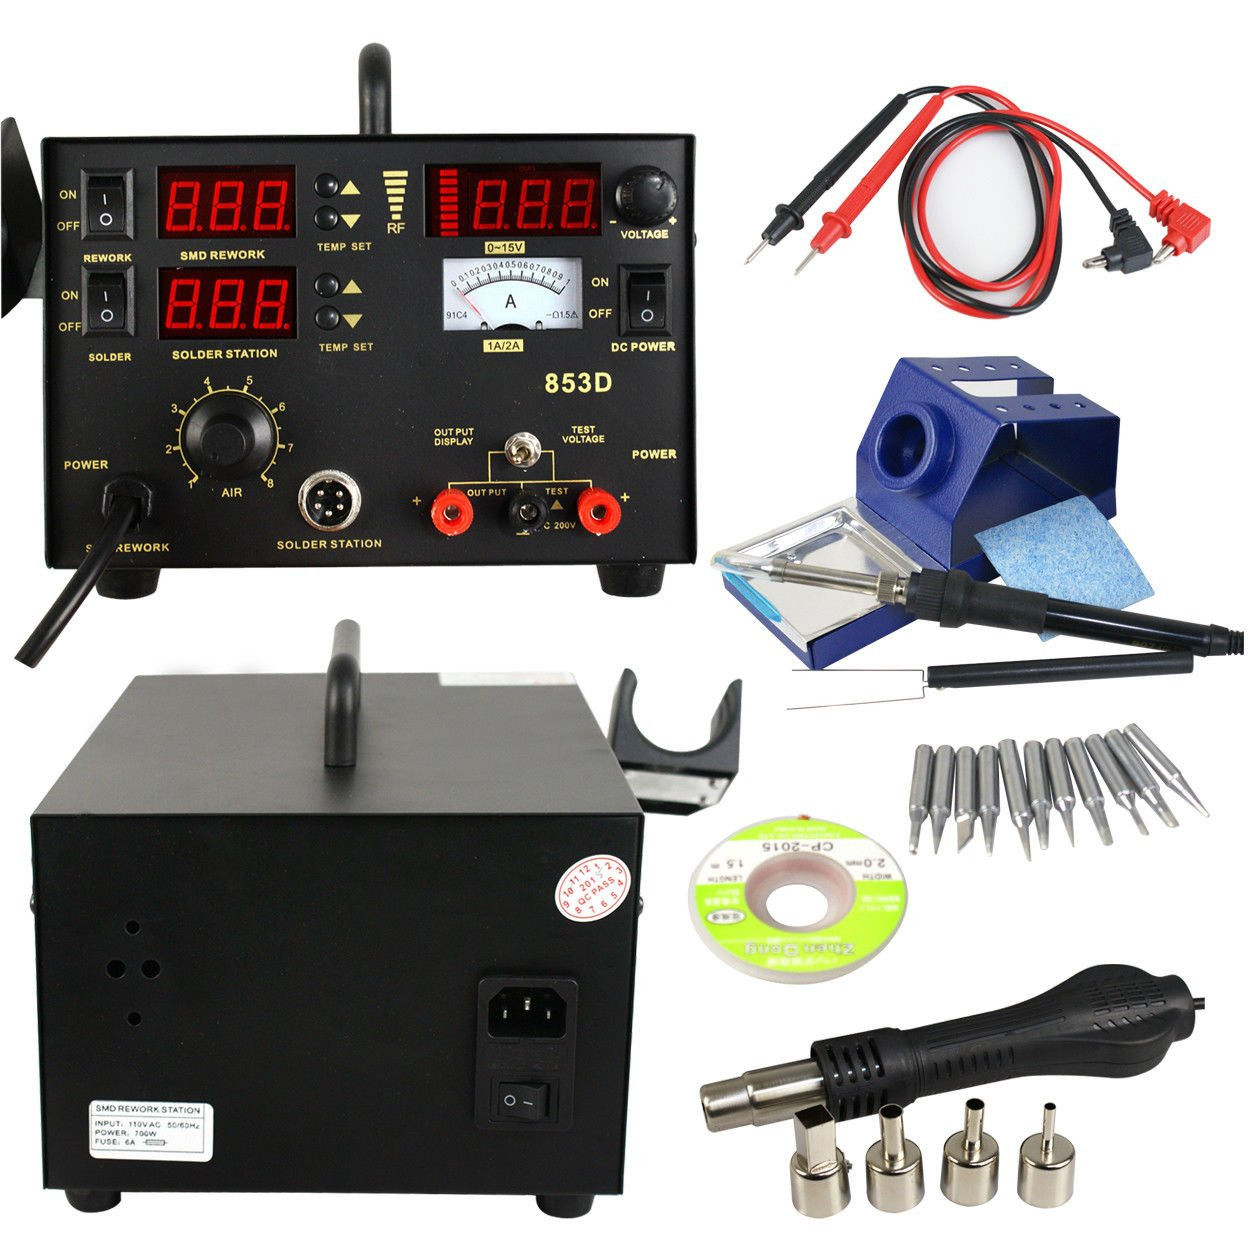 Zd-8901 combine 3 in 1 Digital Soldering Station MULTITESTER-DC Power Supply Compact